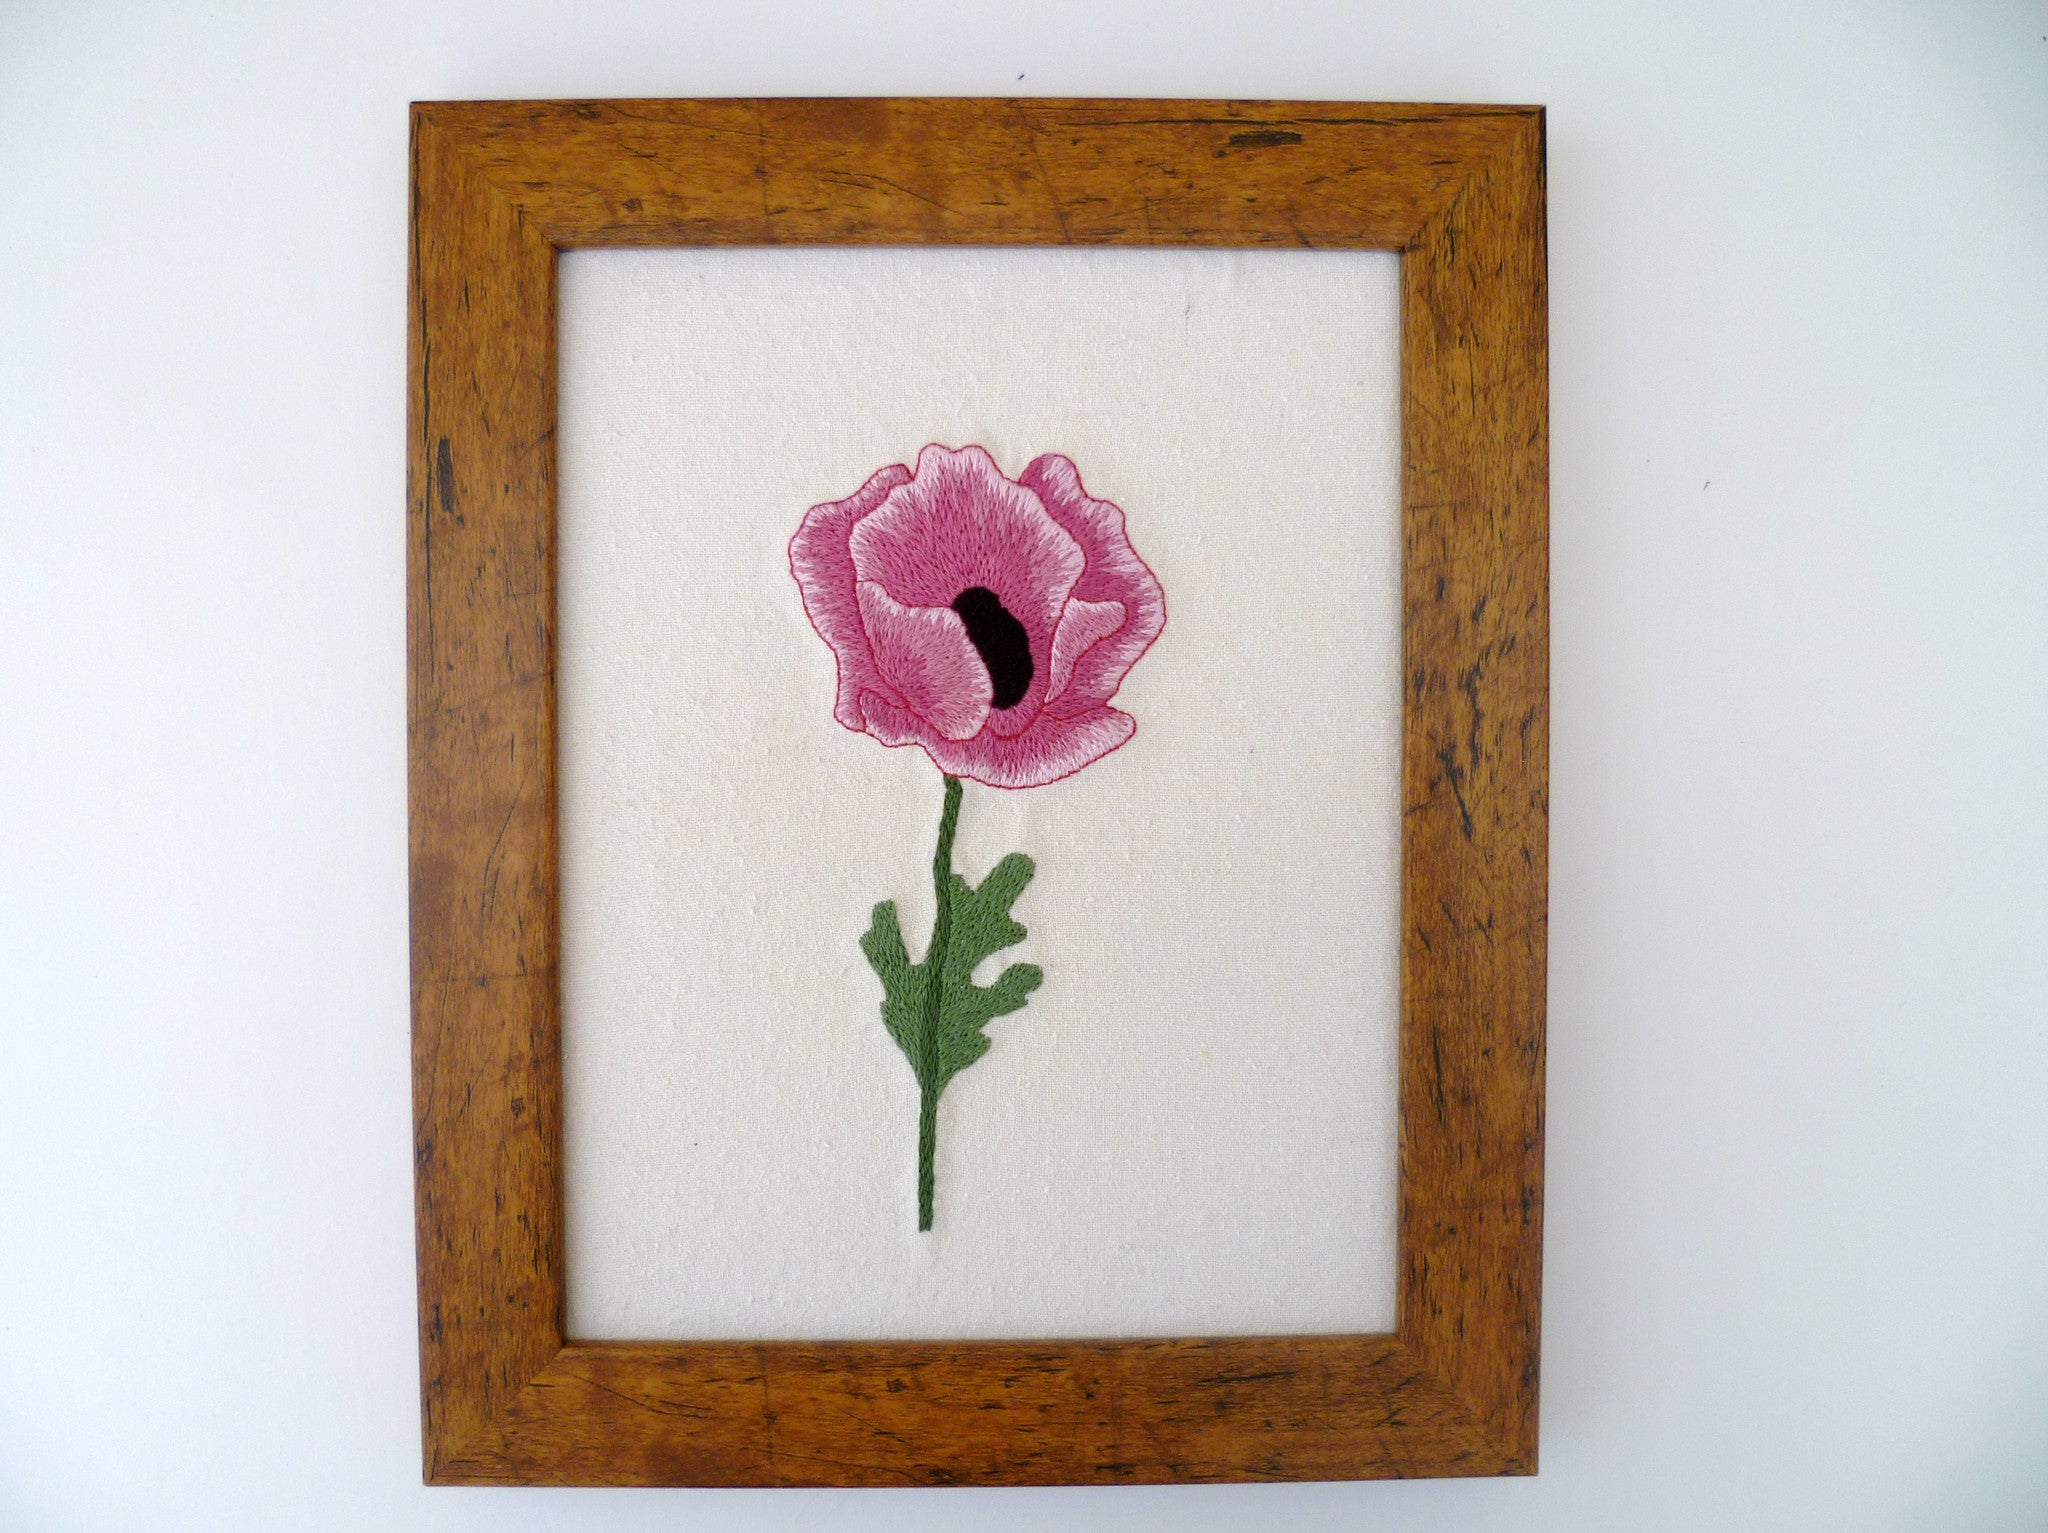 Pink Poppy Embroidery